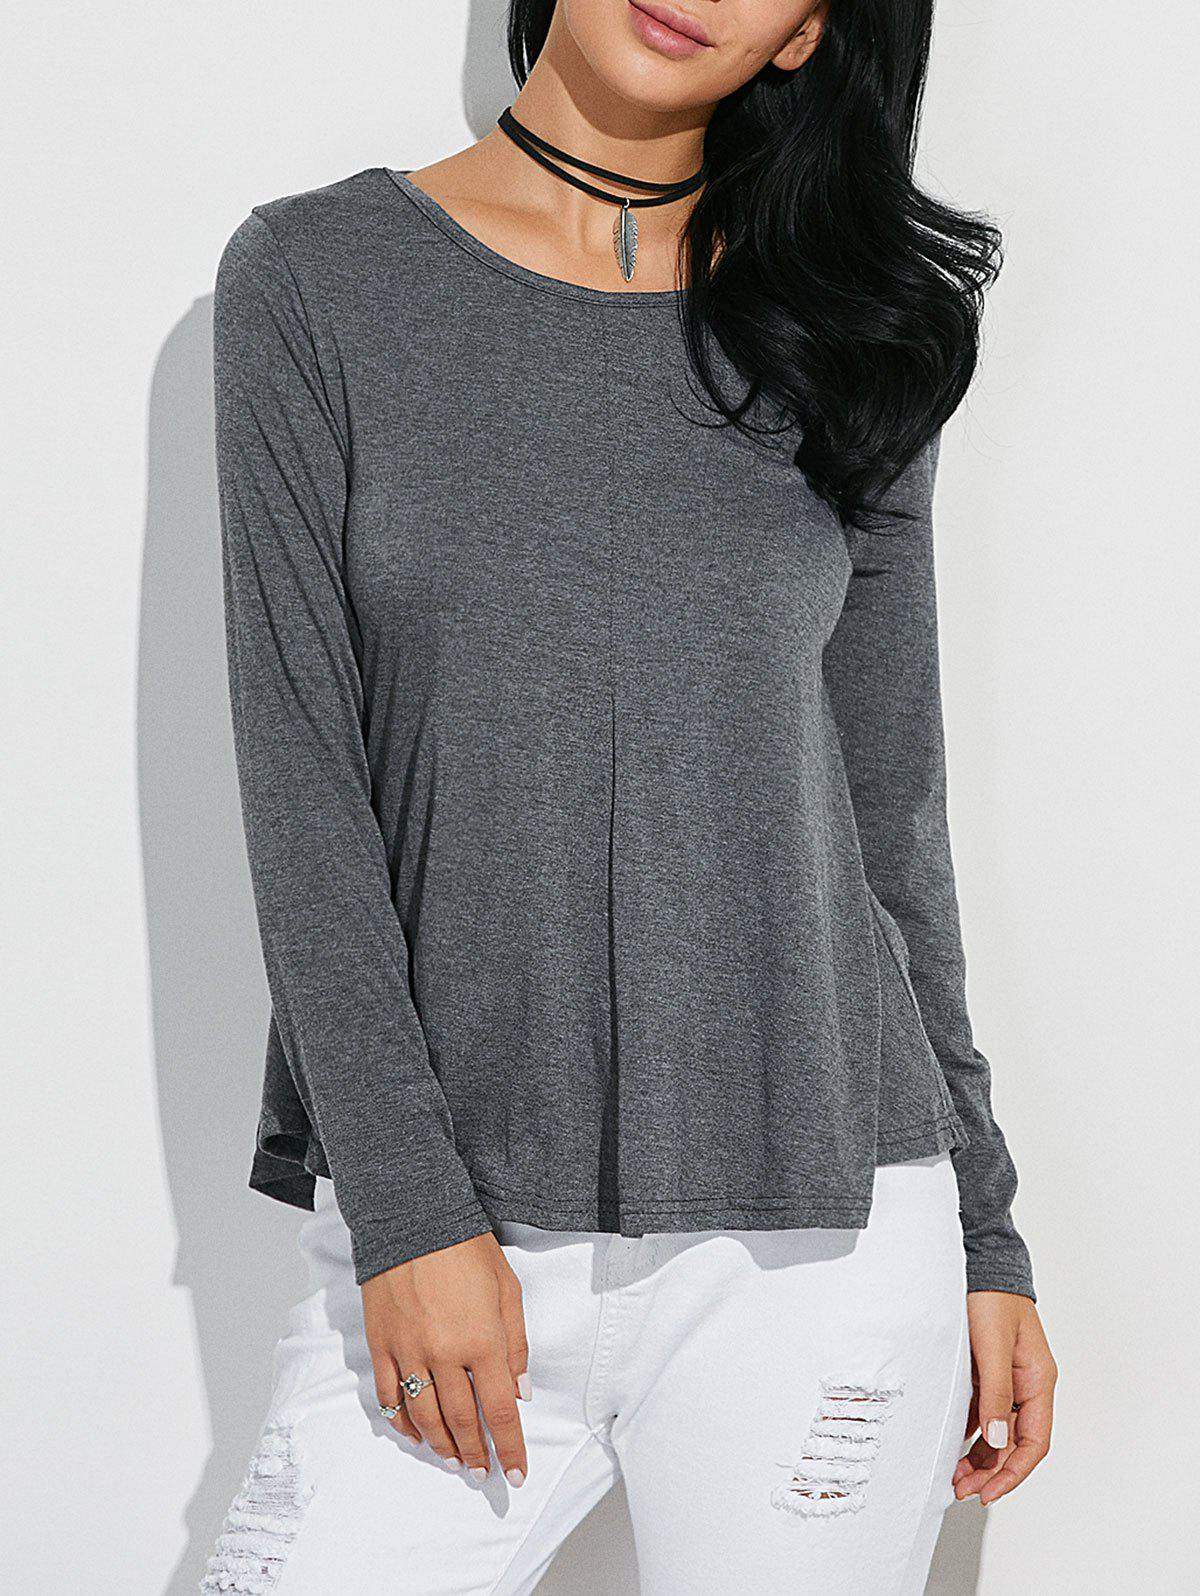 Classic Loose-Fitting T-Shirt - GRAY M